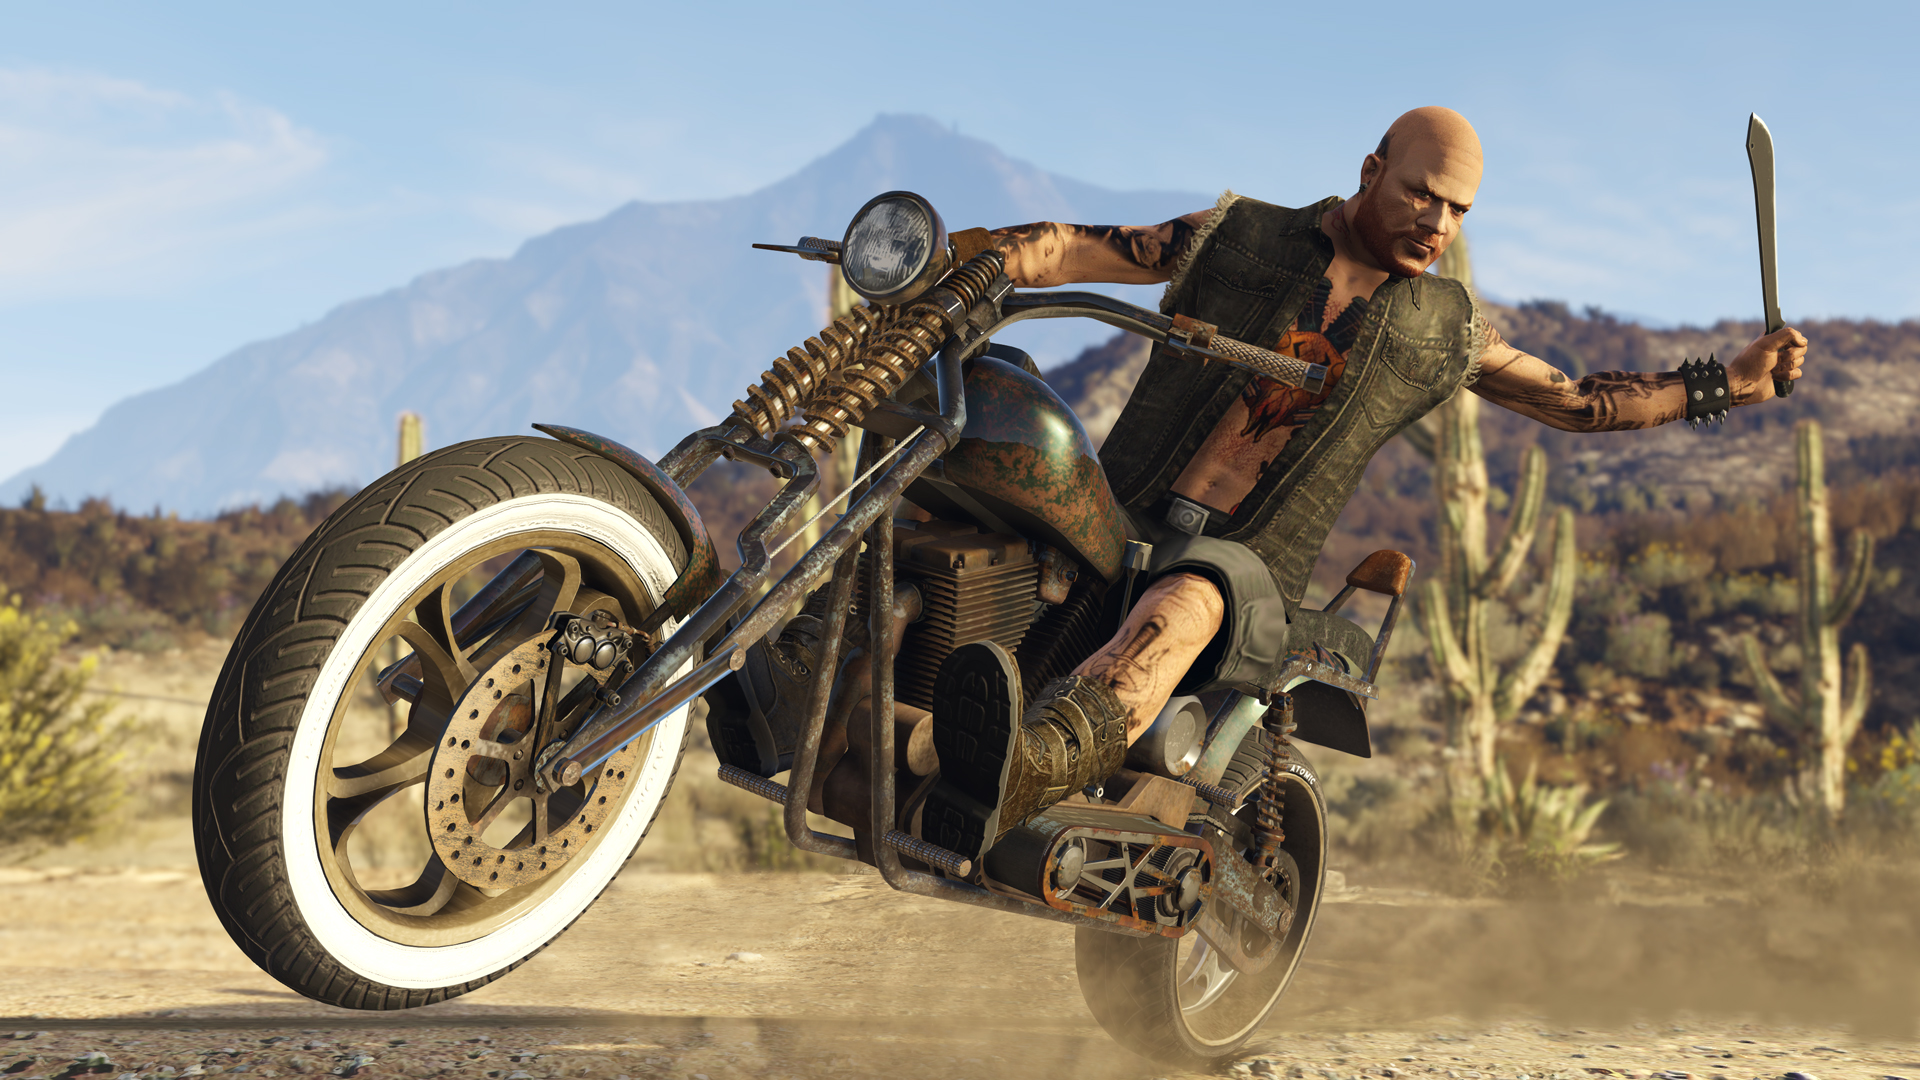 GTA Online: Bikers Coming October 4th - Rockstar Games